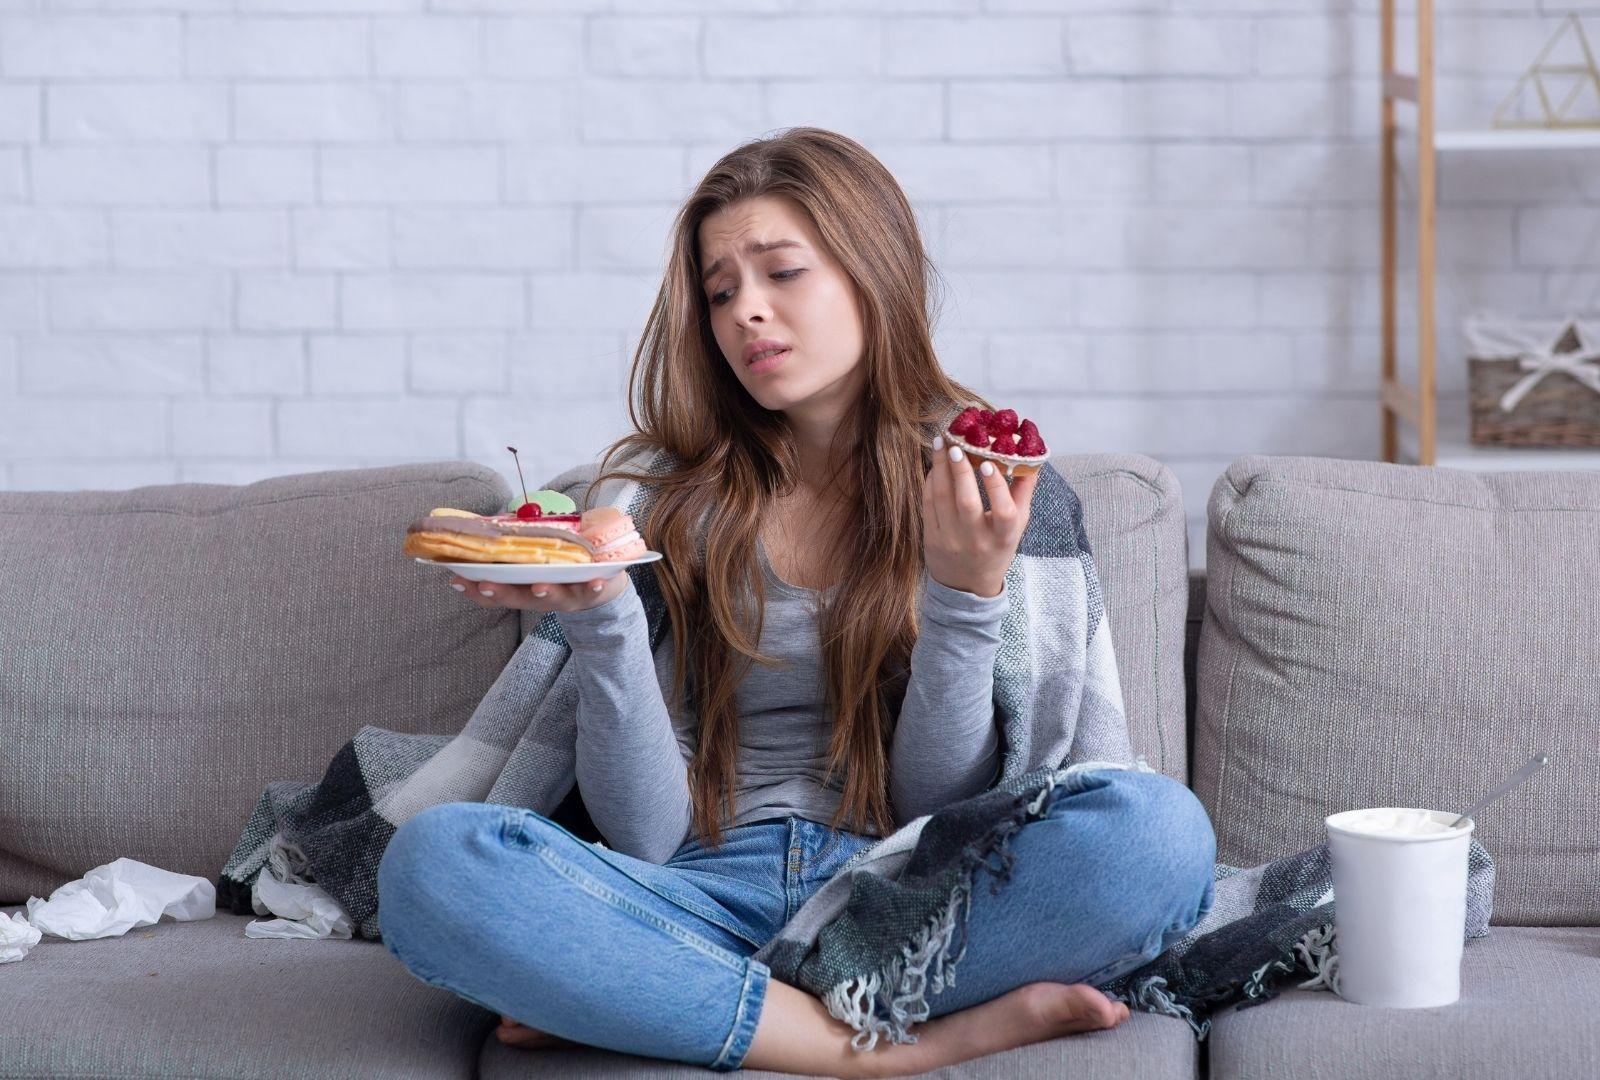 Causes of Selective Eating Disorder